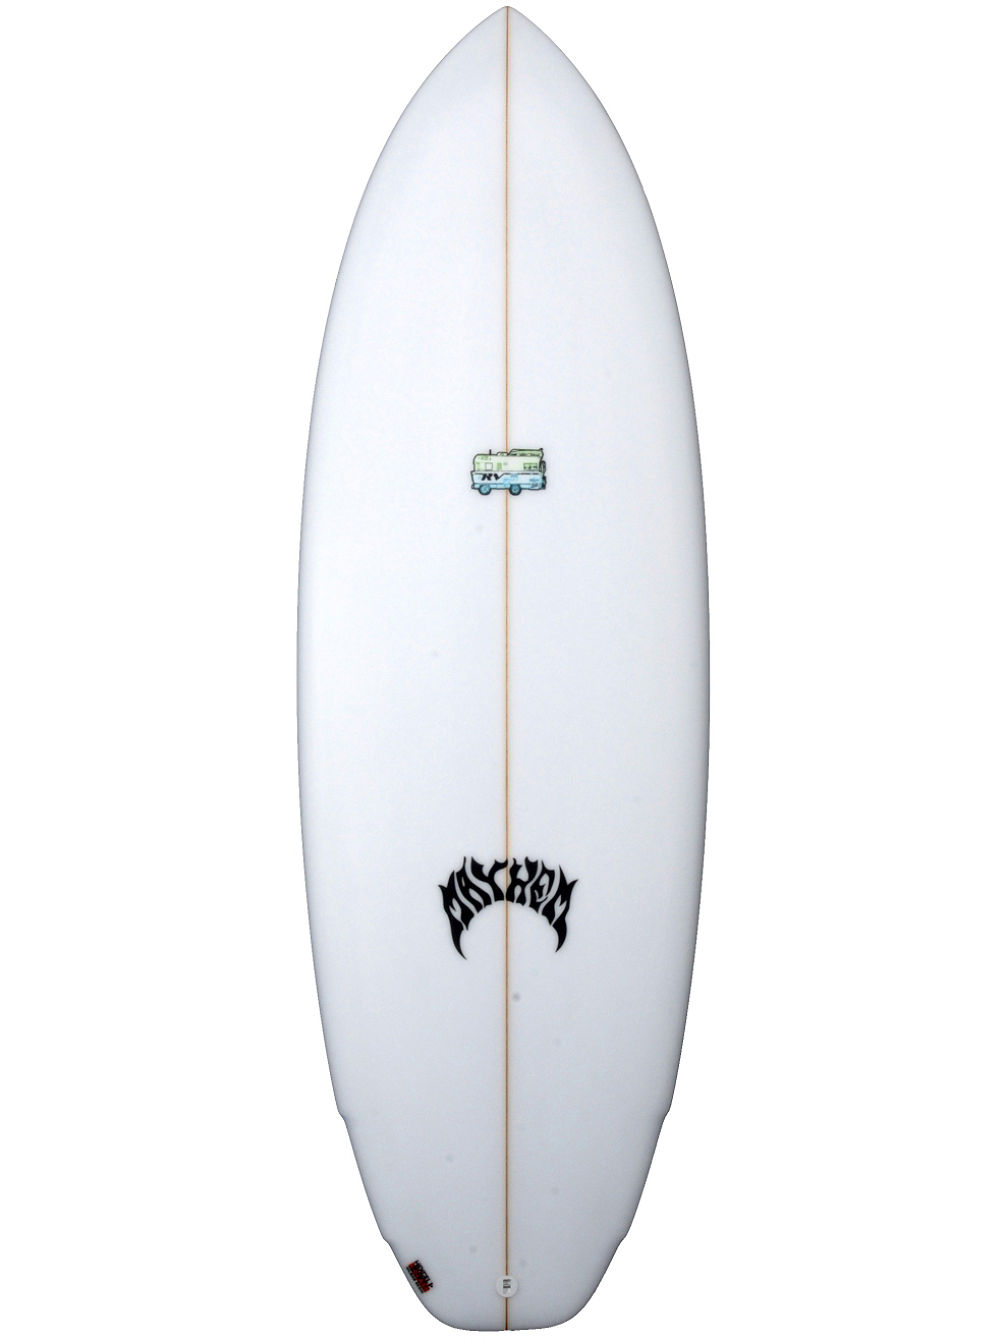 RV 5'5 Surfboard